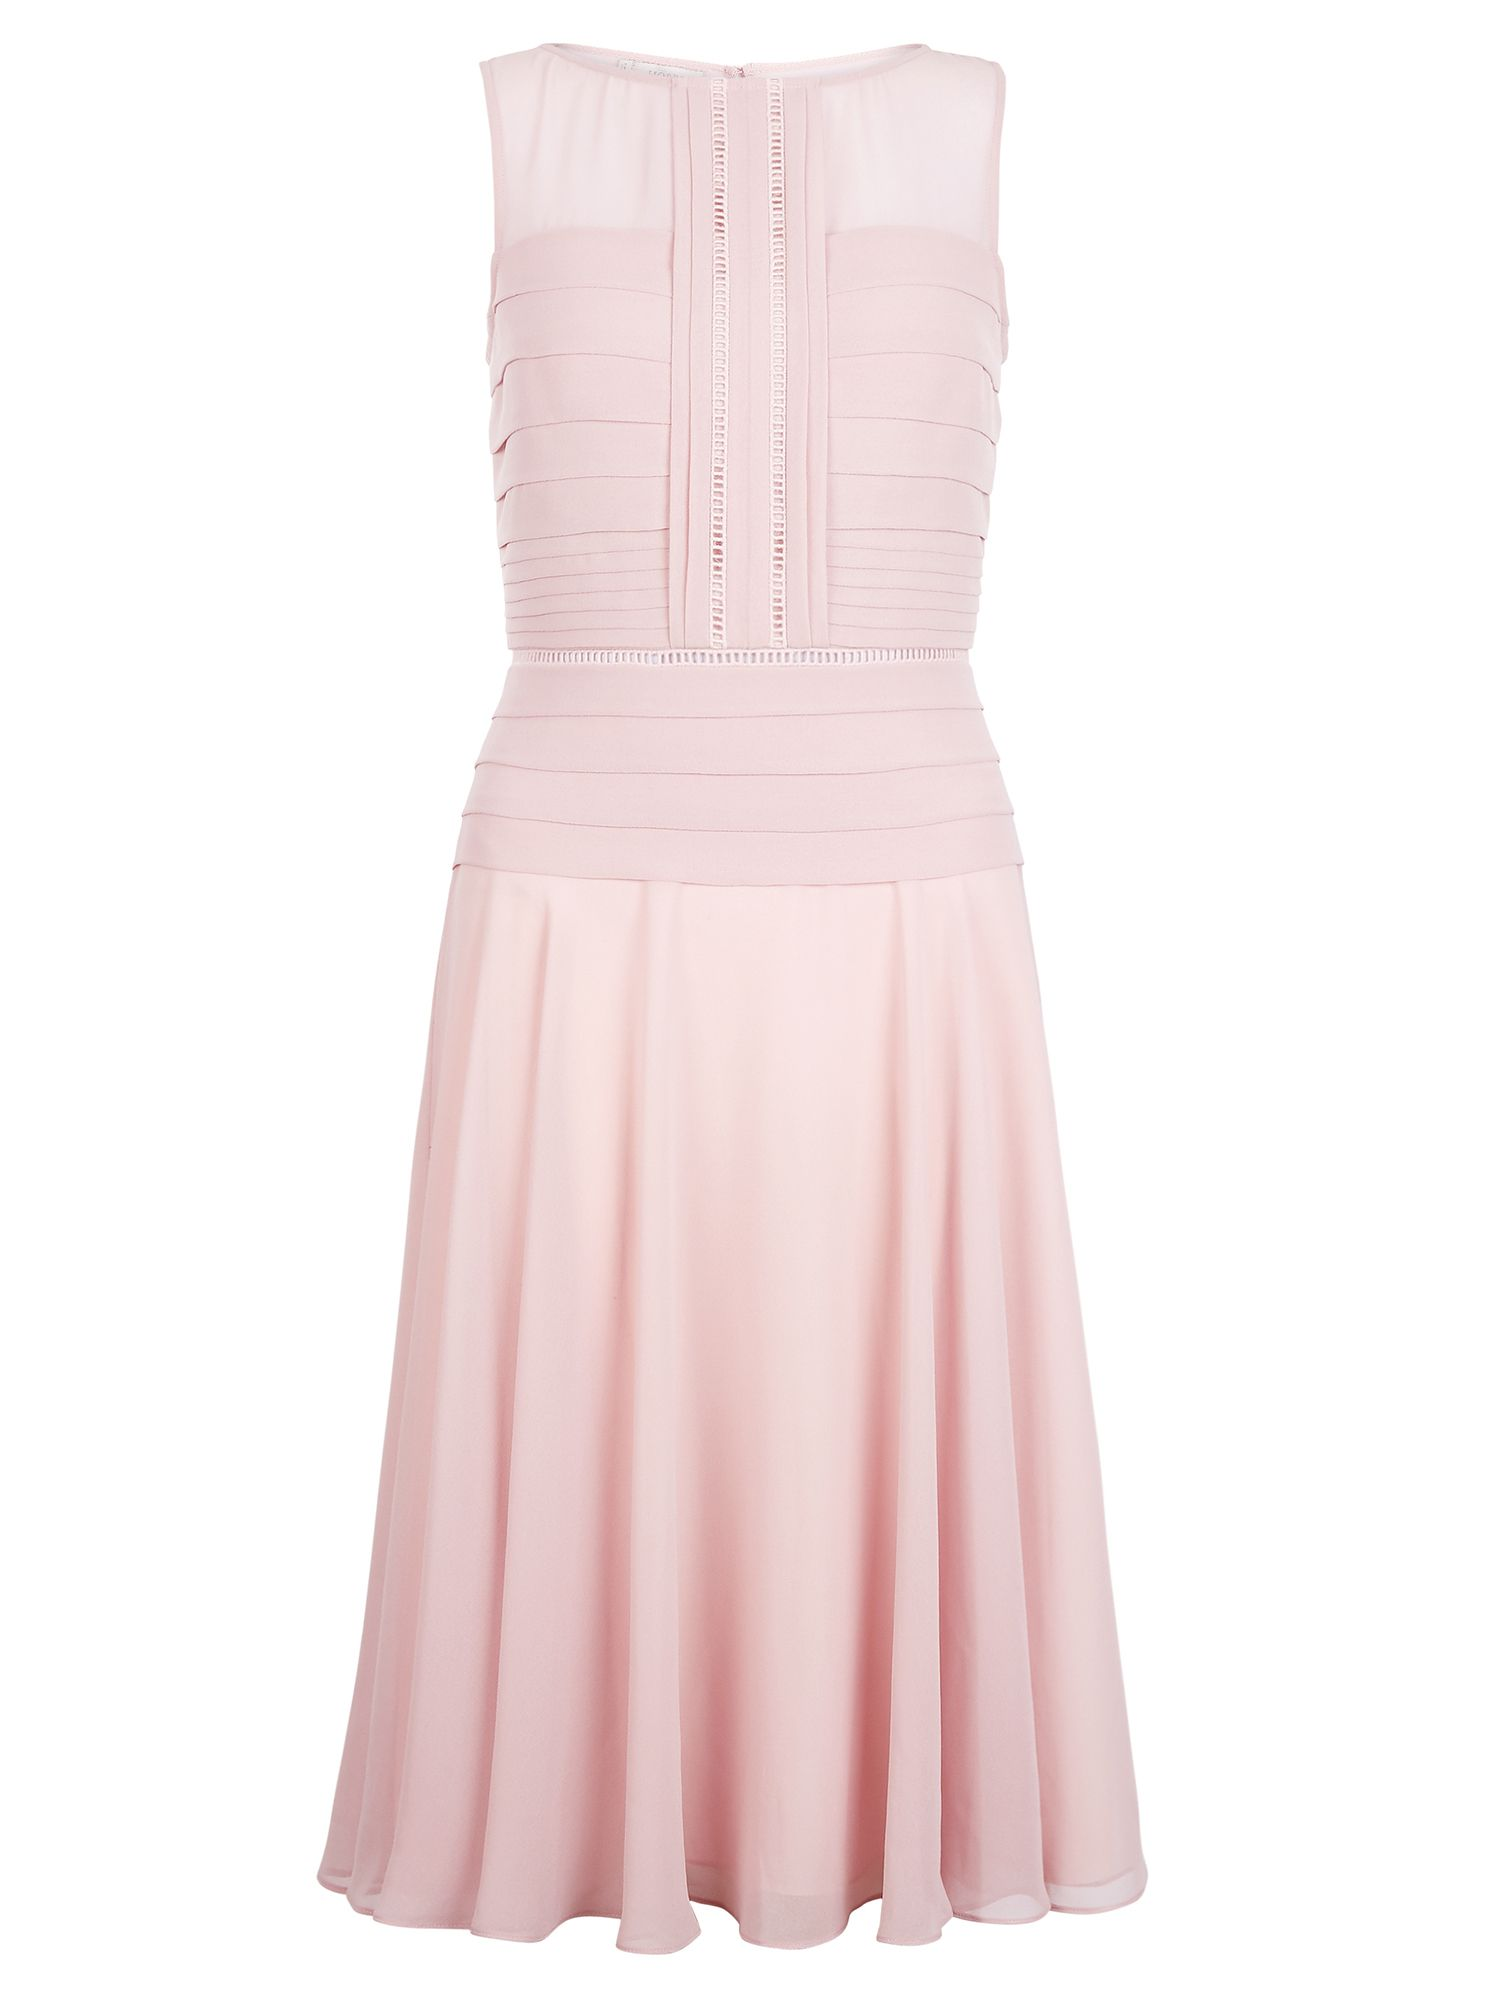 Hobbs Skylar Dress, Light Pink